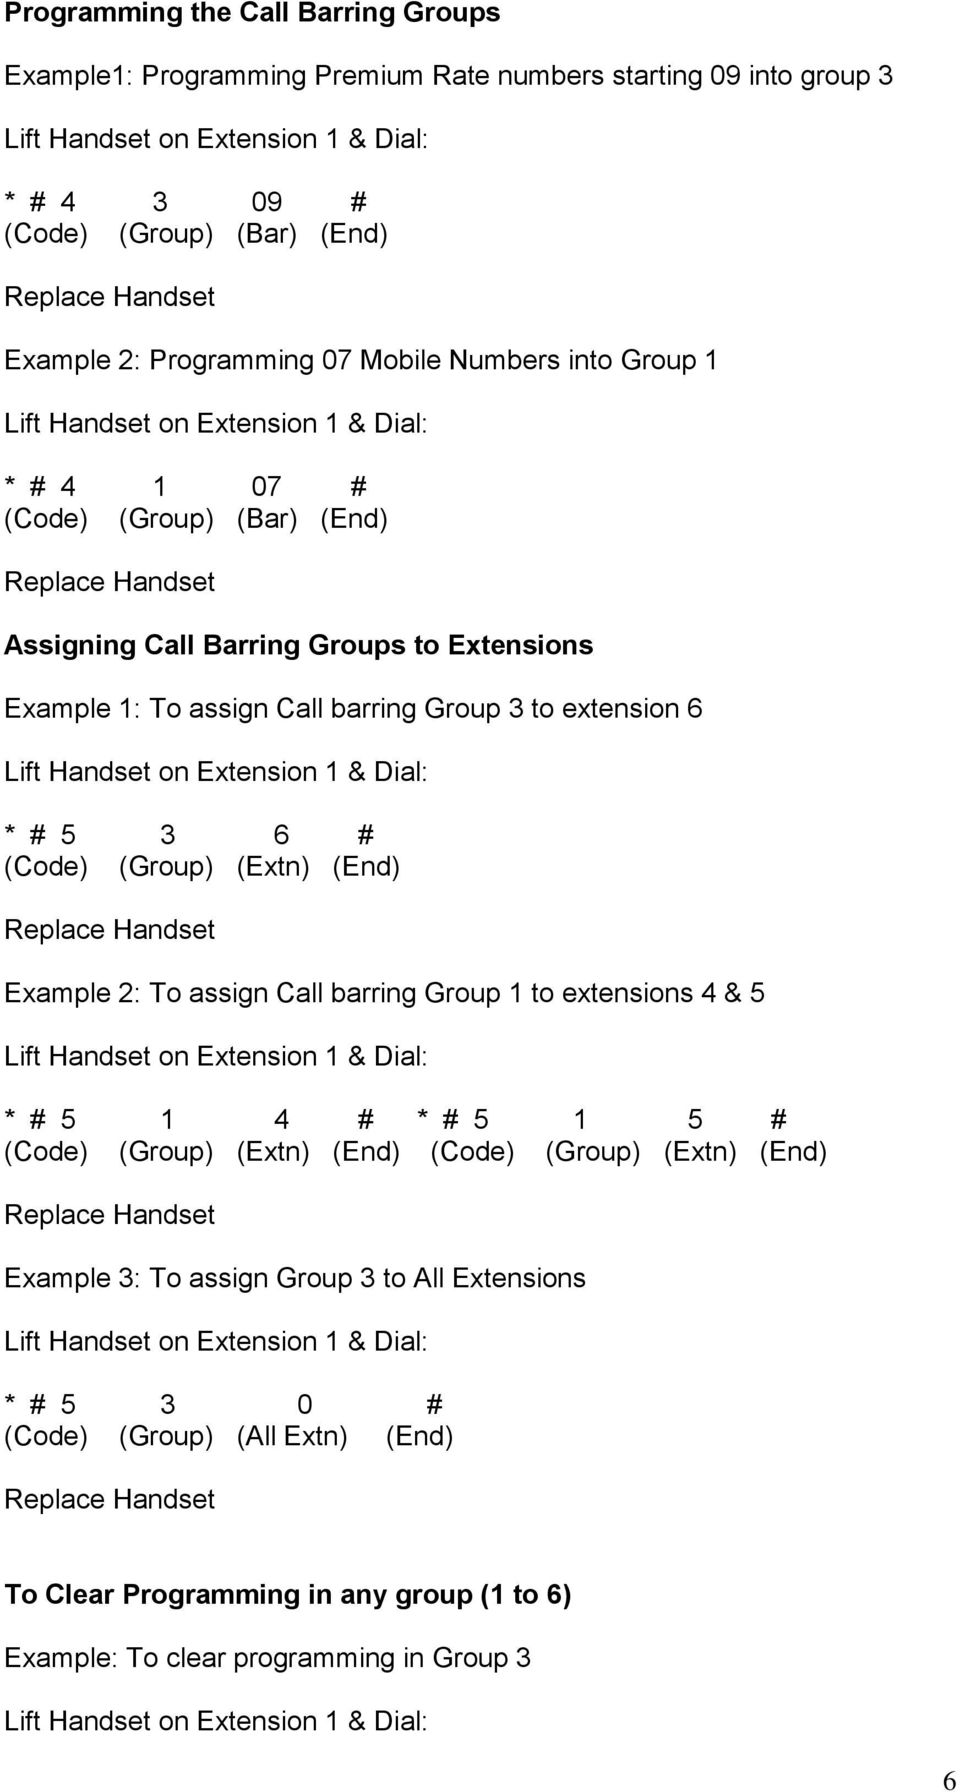 3 6 # (Code) (Group) (Extn) (End) Example 2: To assign Call barring Group 1 to extensions 4 & 5 * # 5 1 4 # * # 5 1 5 # (Code) (Group) (Extn) (End) (Code) (Group) (Extn)